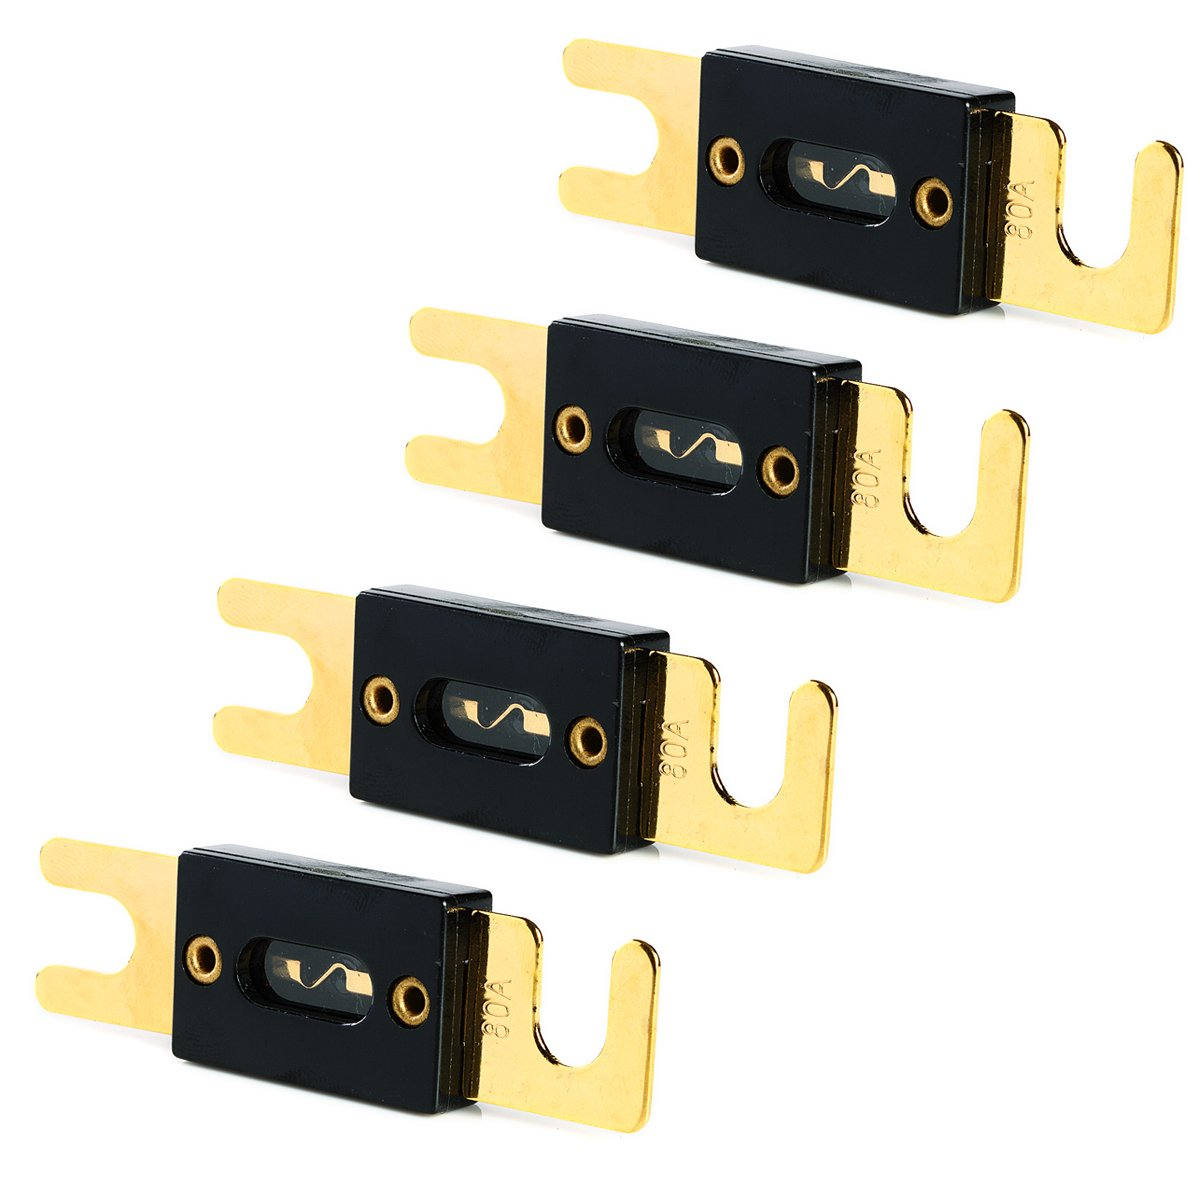 100 AMP 4 Pack ANL fuse For Autocar Vehicles Audio System Gold Plated